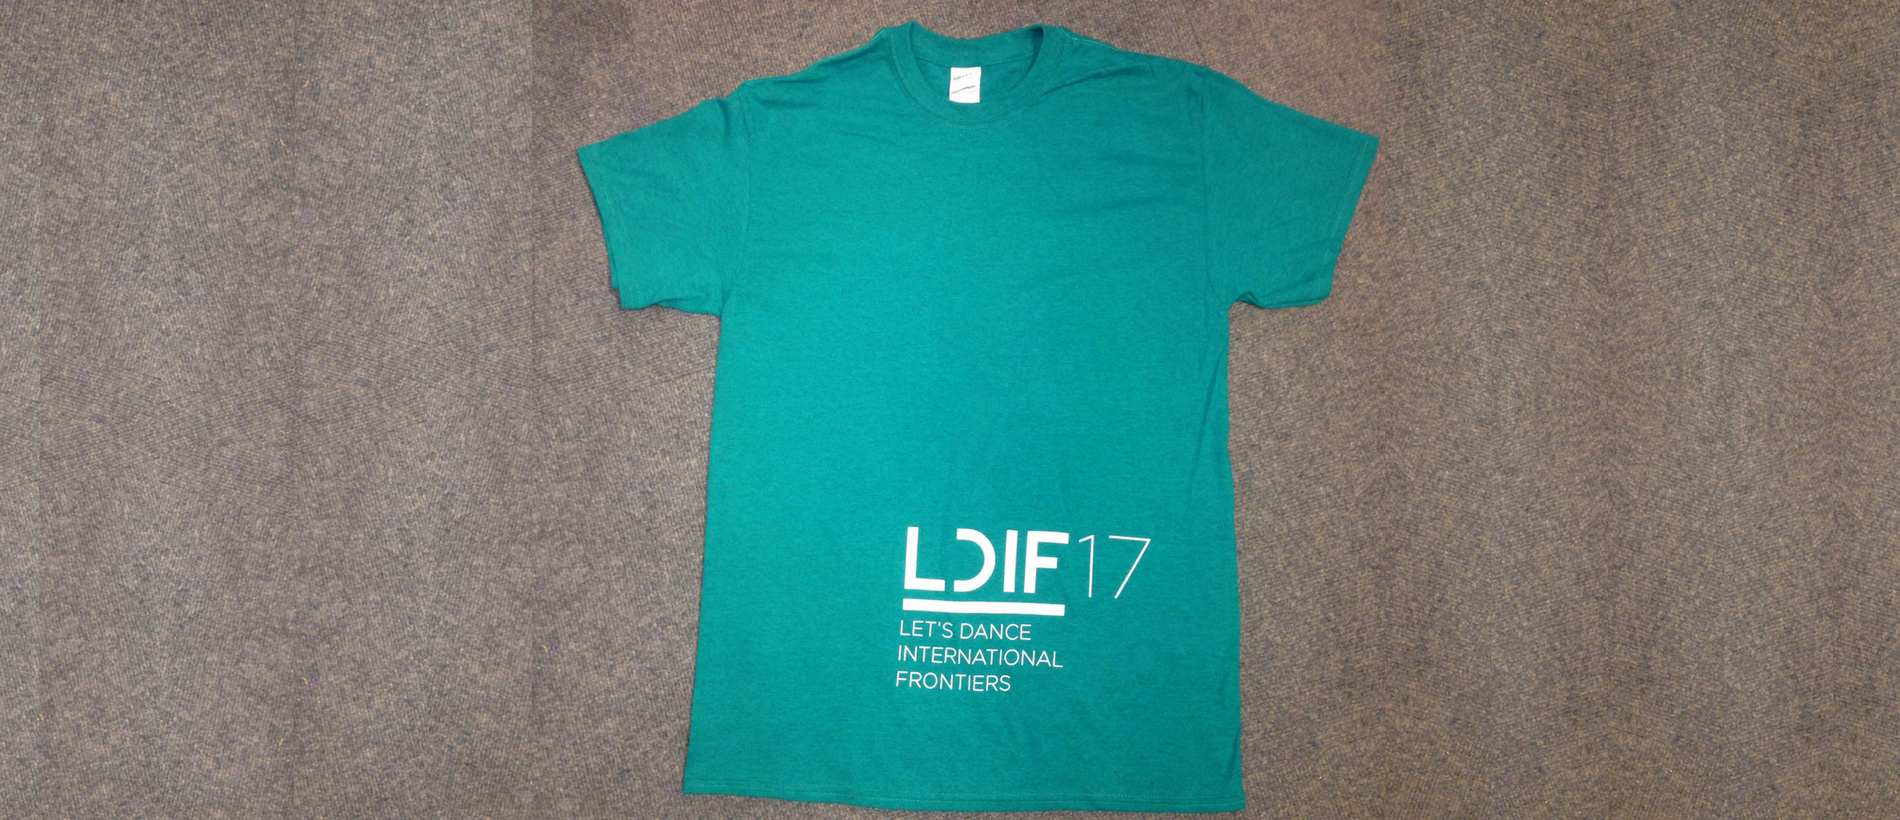 LDIF17 T-SHIRT — Page Banner